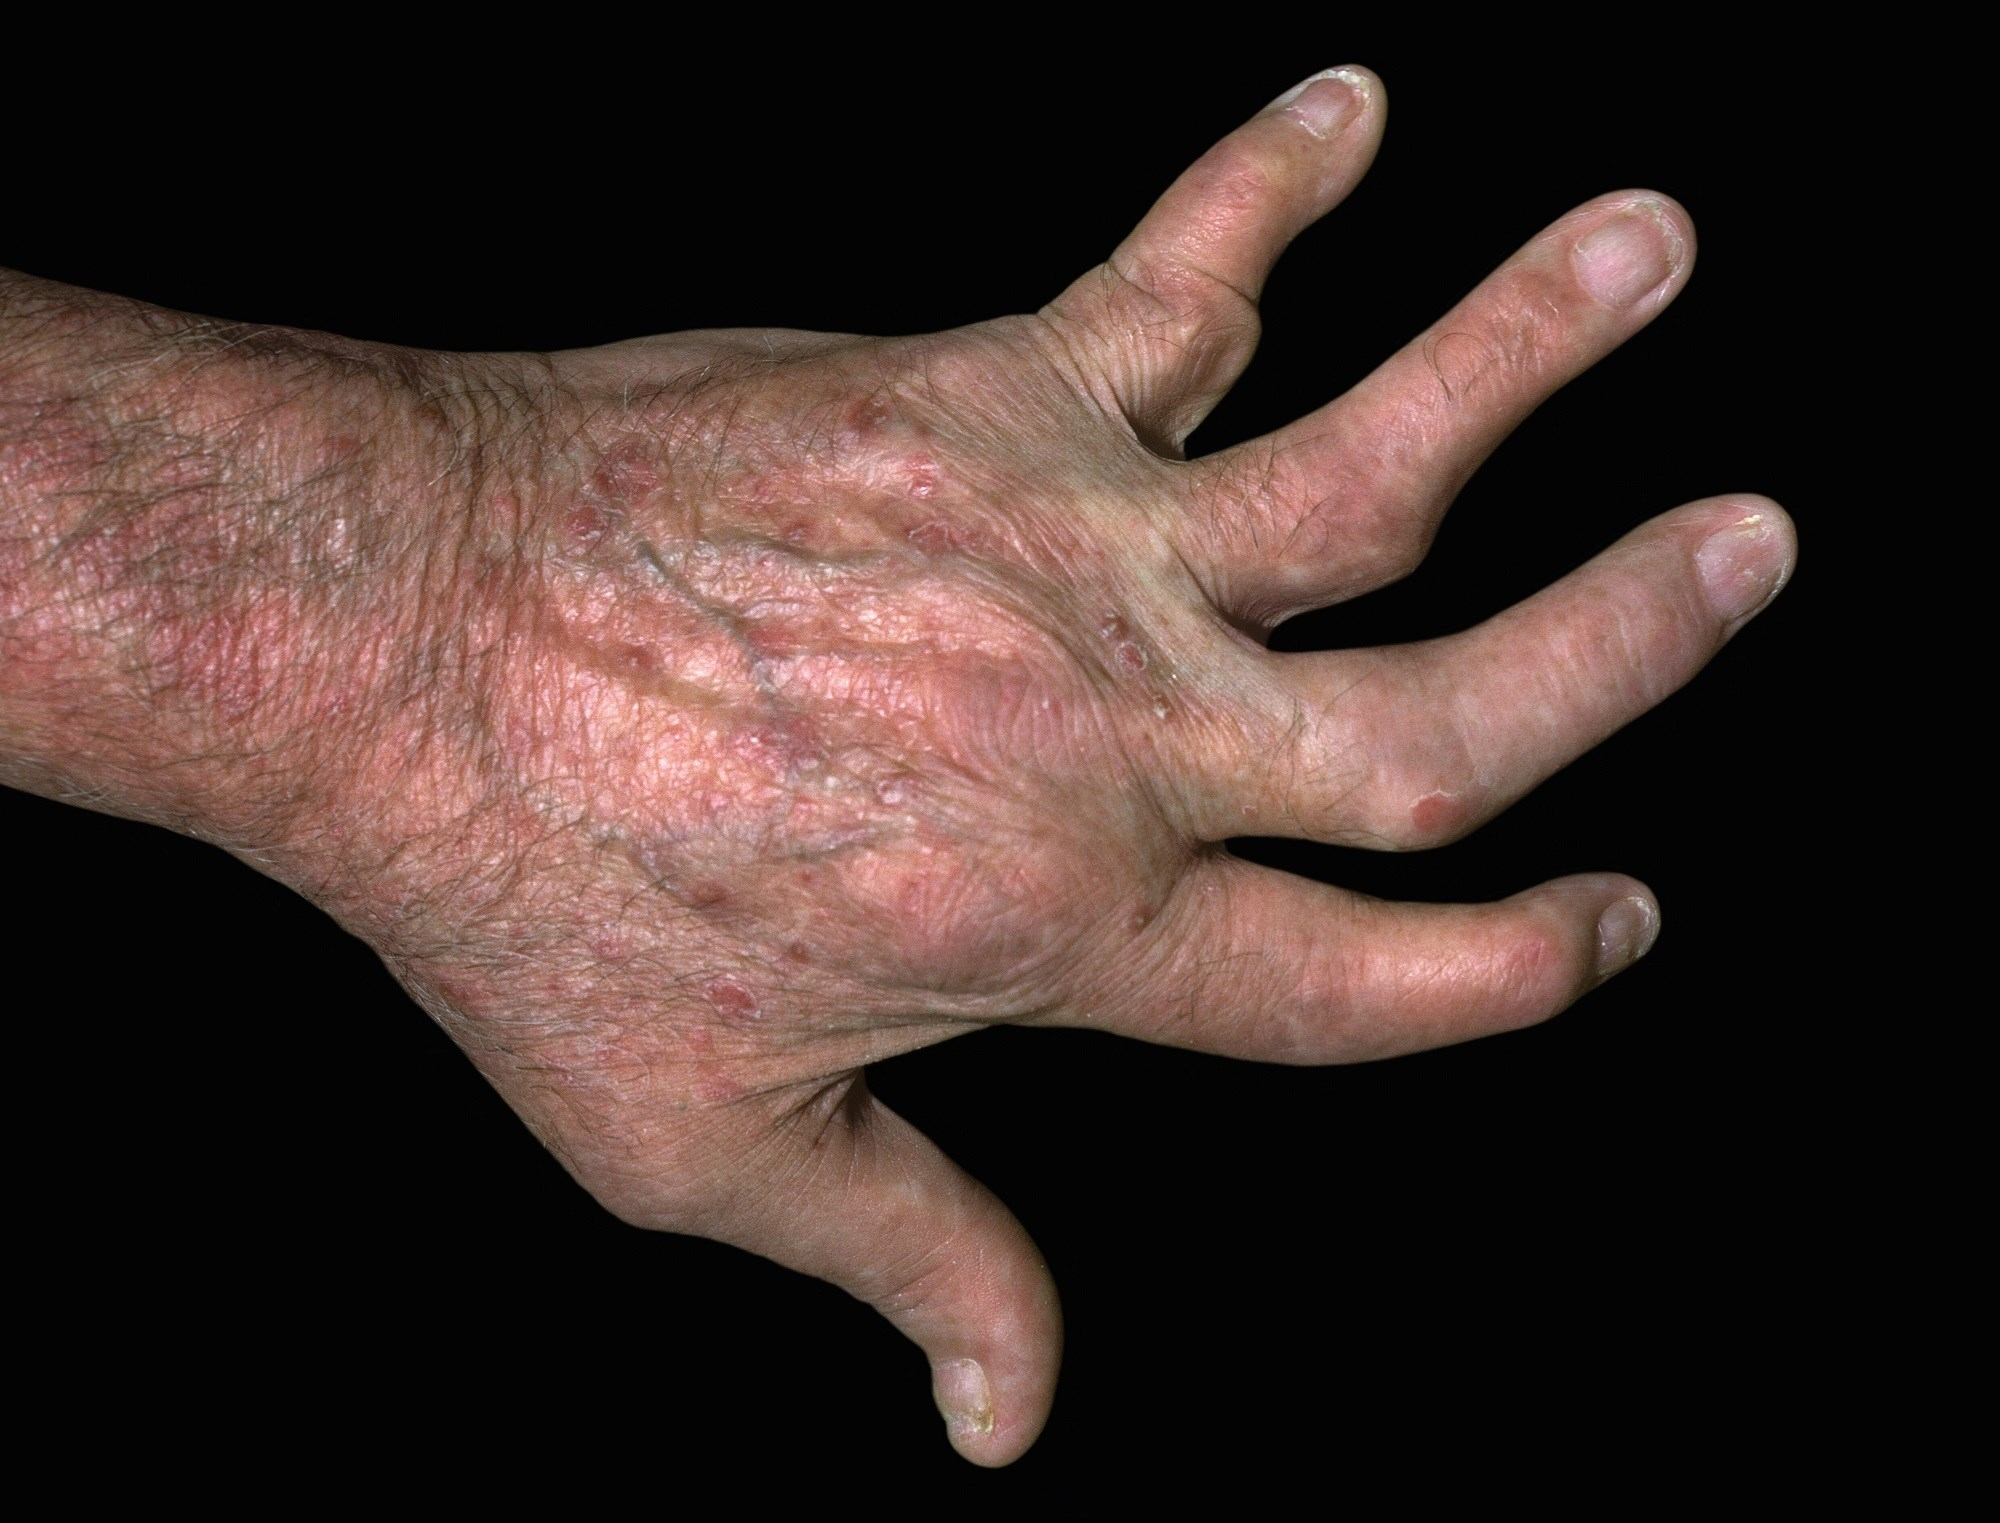 Minimal Disease Activity Provides Valid Assessment of Adalimumab-Treated Psoriatic Arthritis